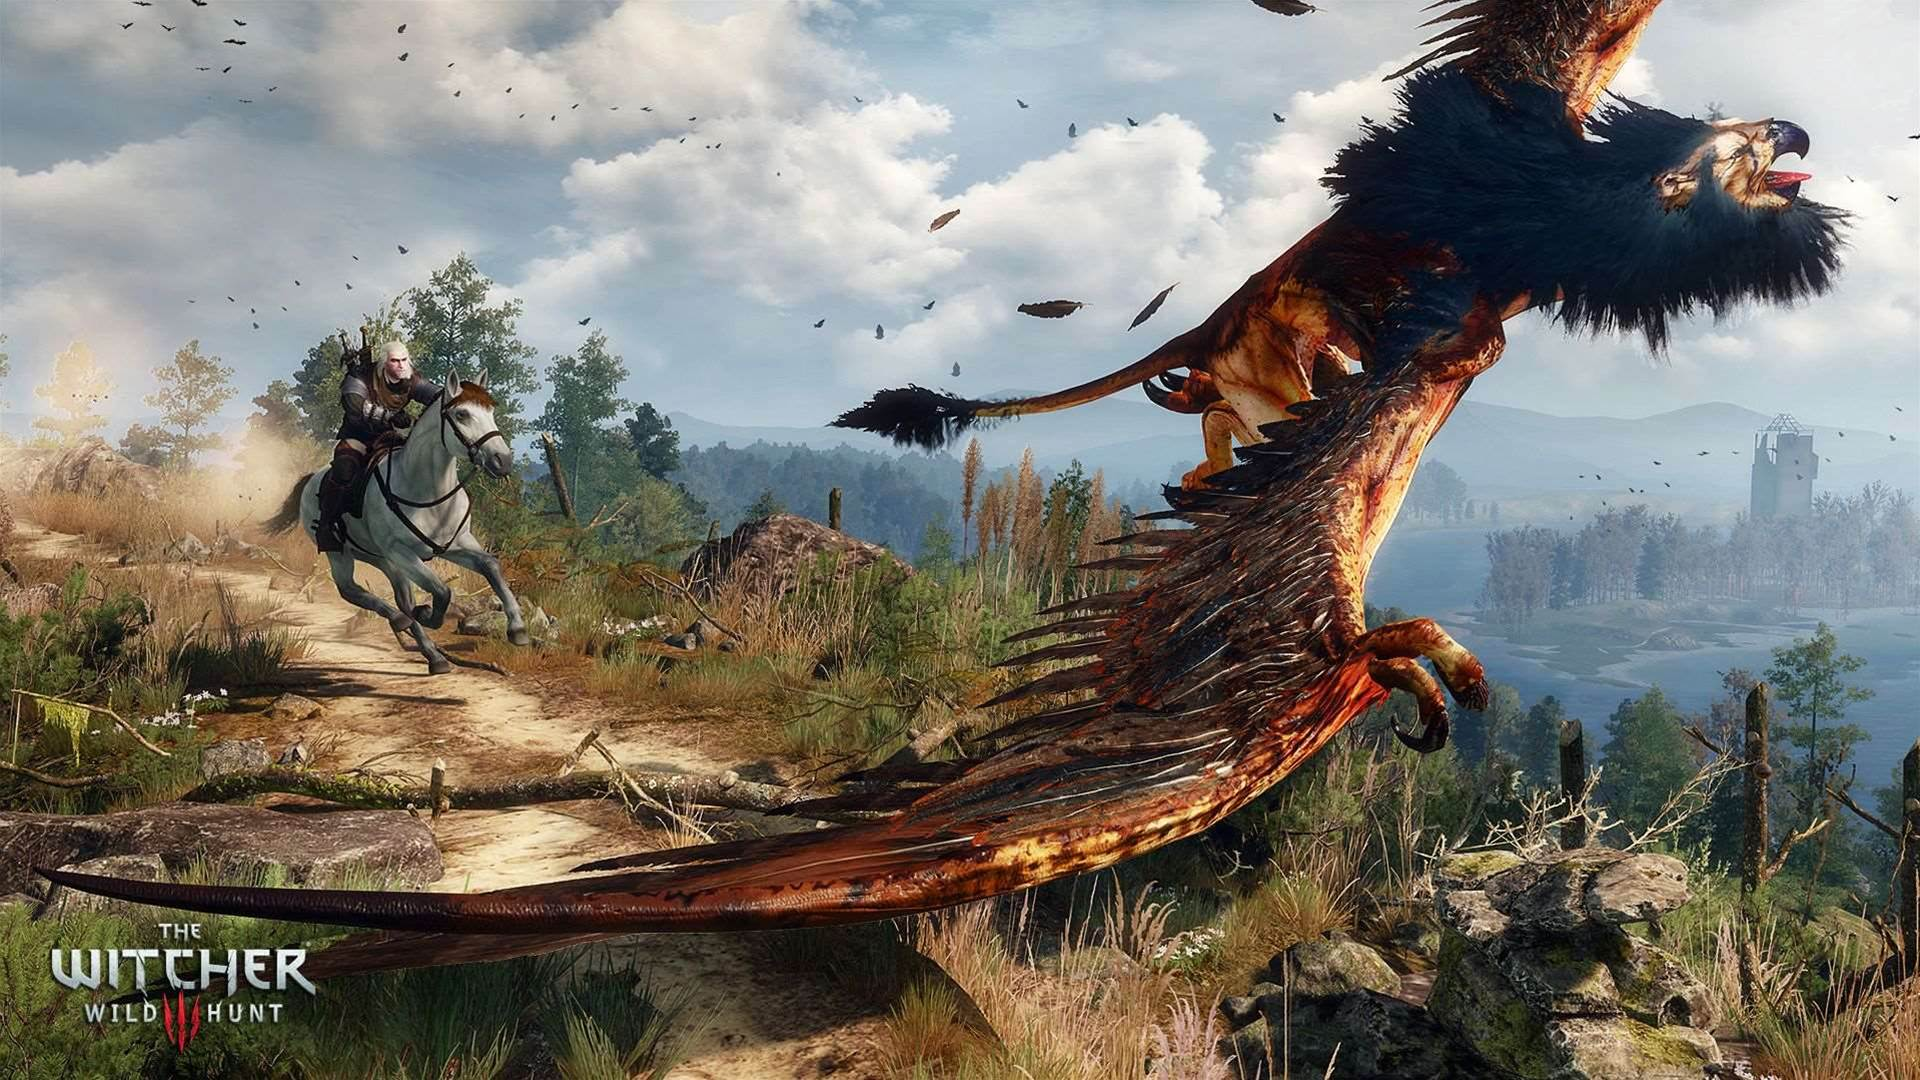 New pics, gameplay trailer, drop for The Witcher 3: Wild Hunt